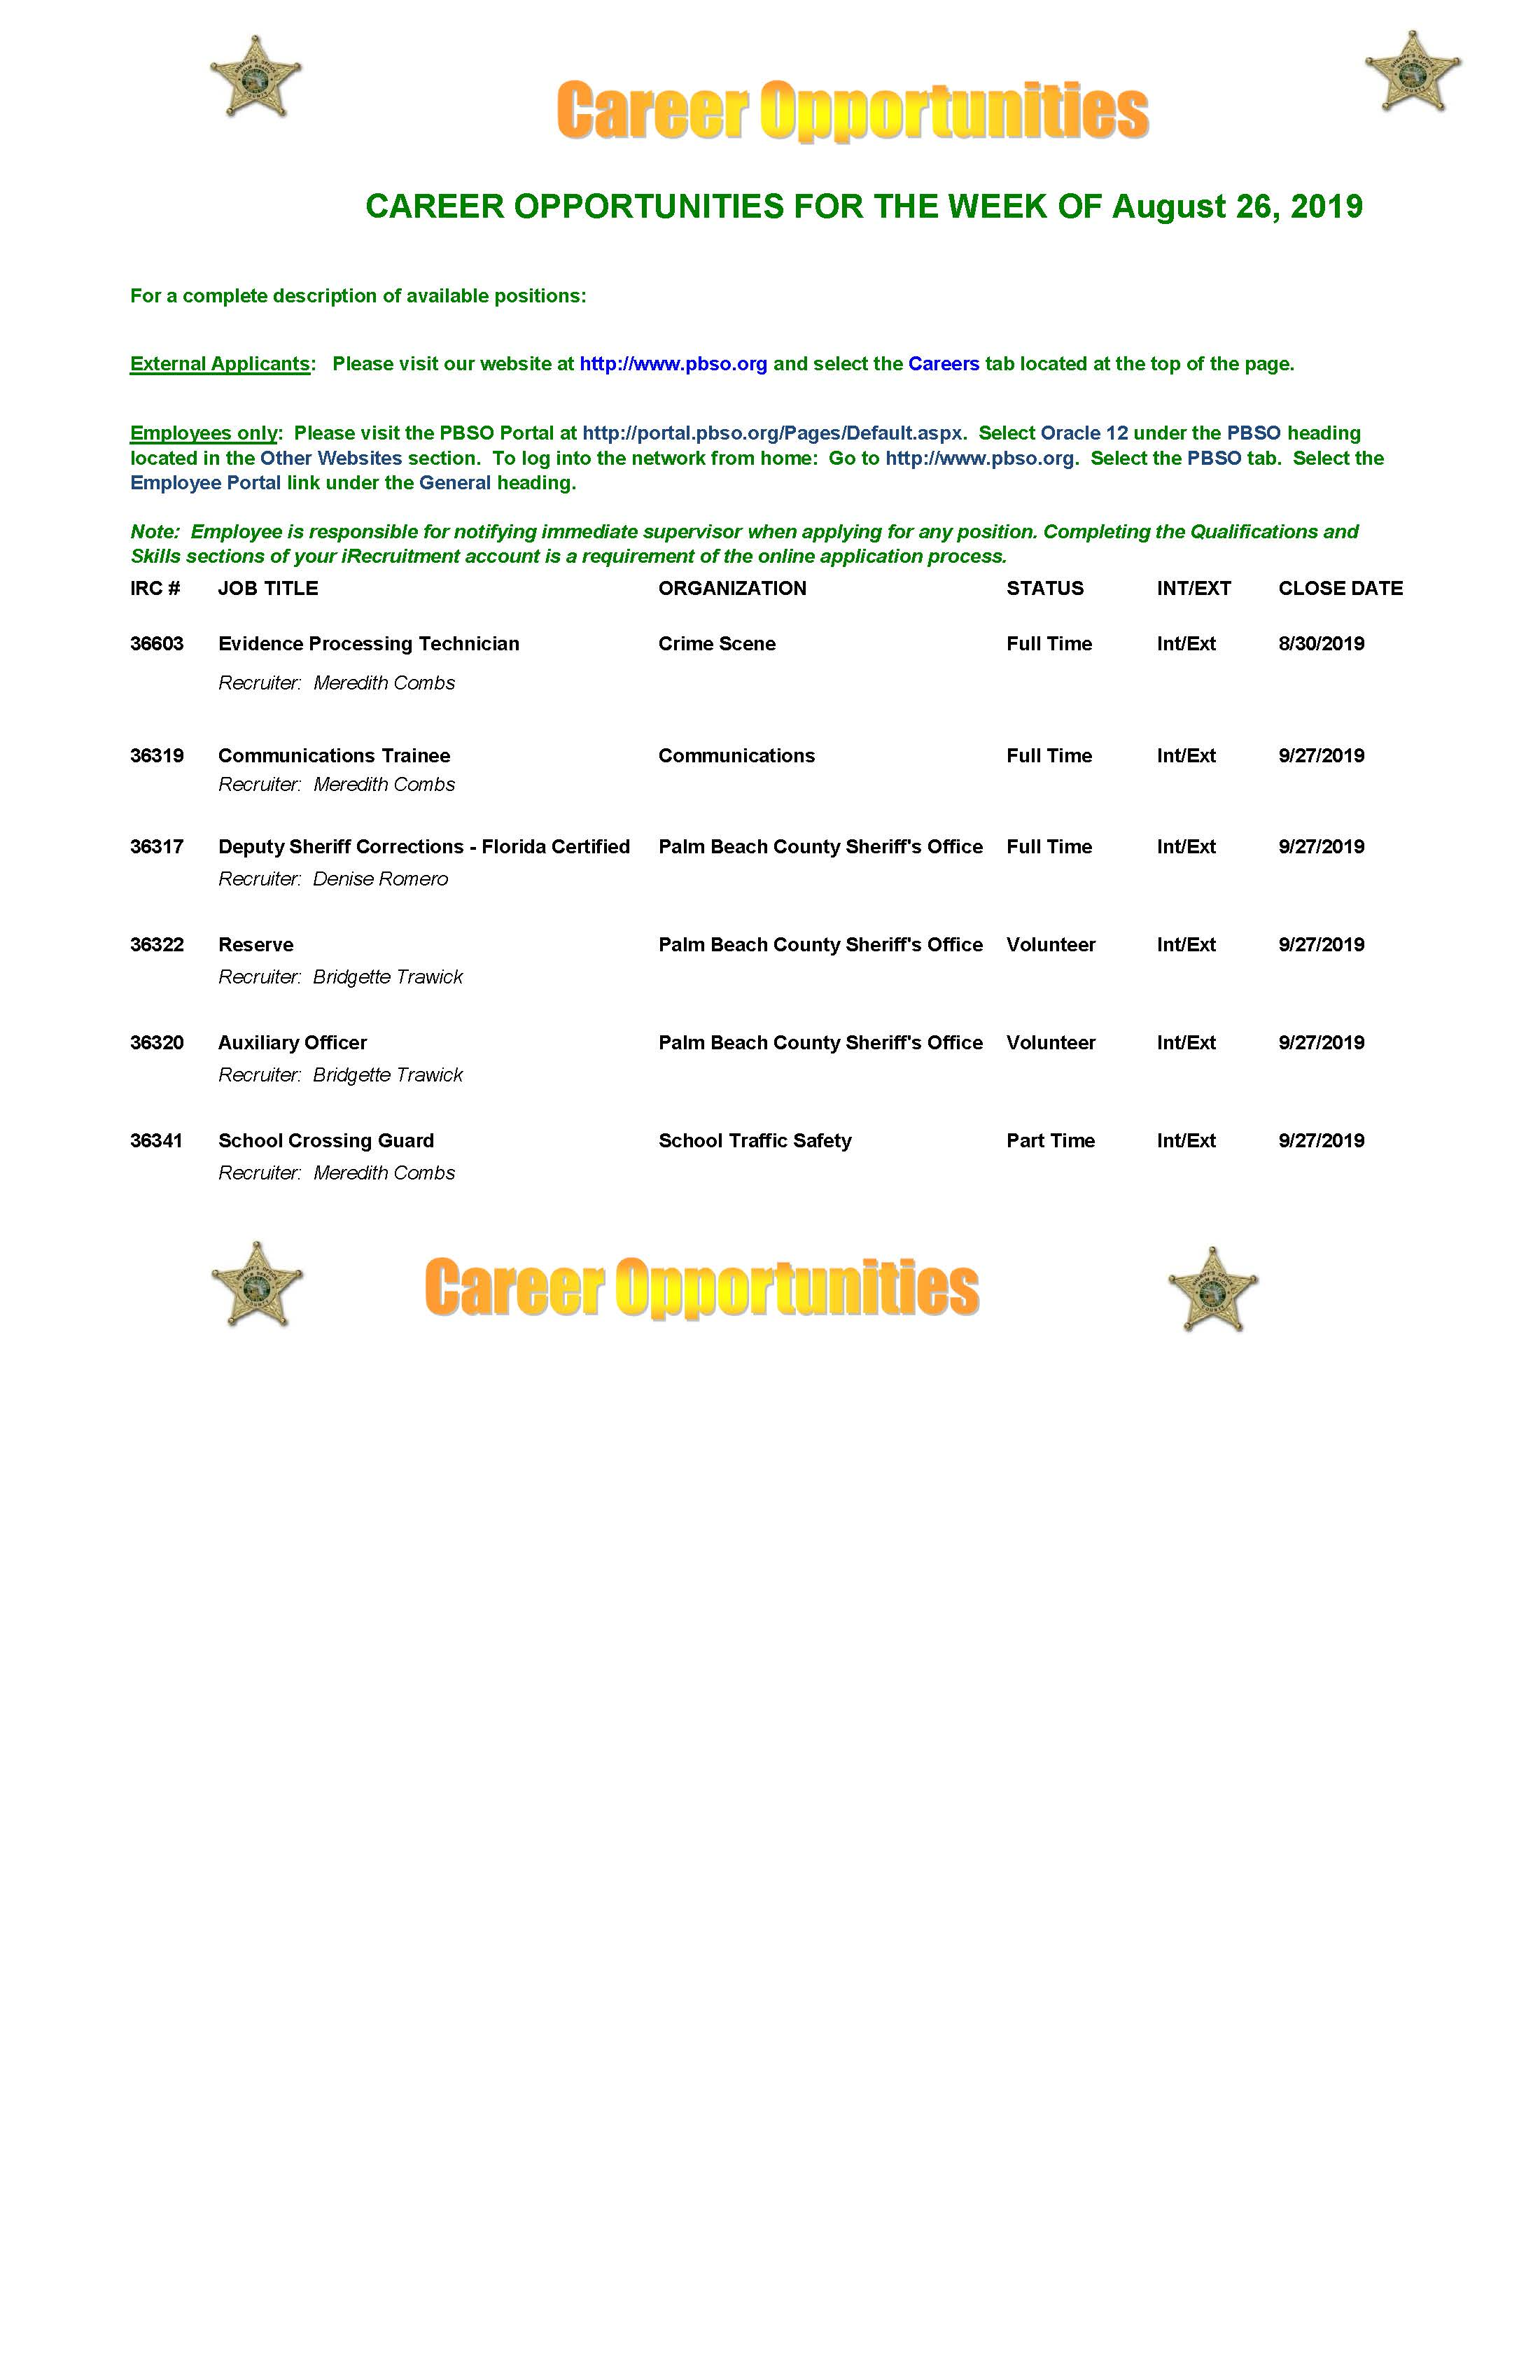 Human Resources - Palm Beach County Sheriff's Office